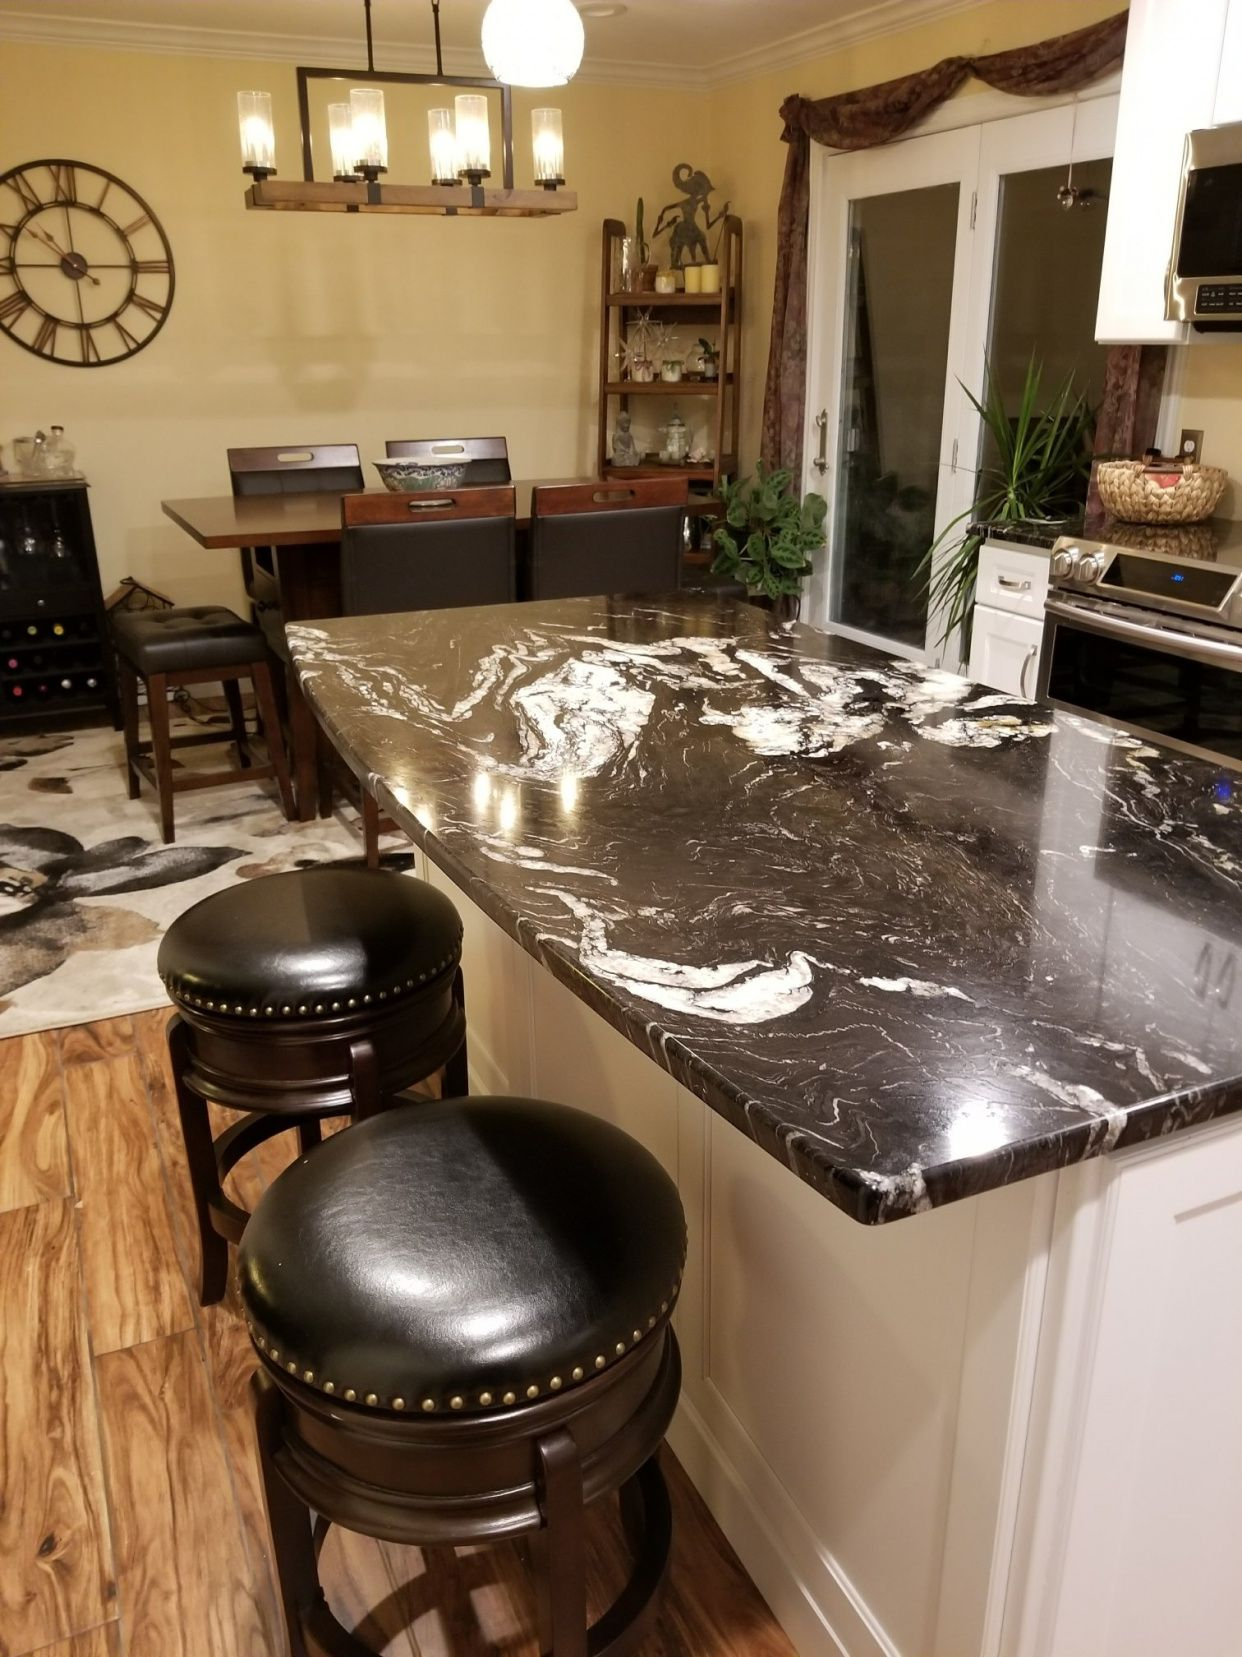 99 Granite Countertops Orchard Park Ny Best Kitchen Cabinet